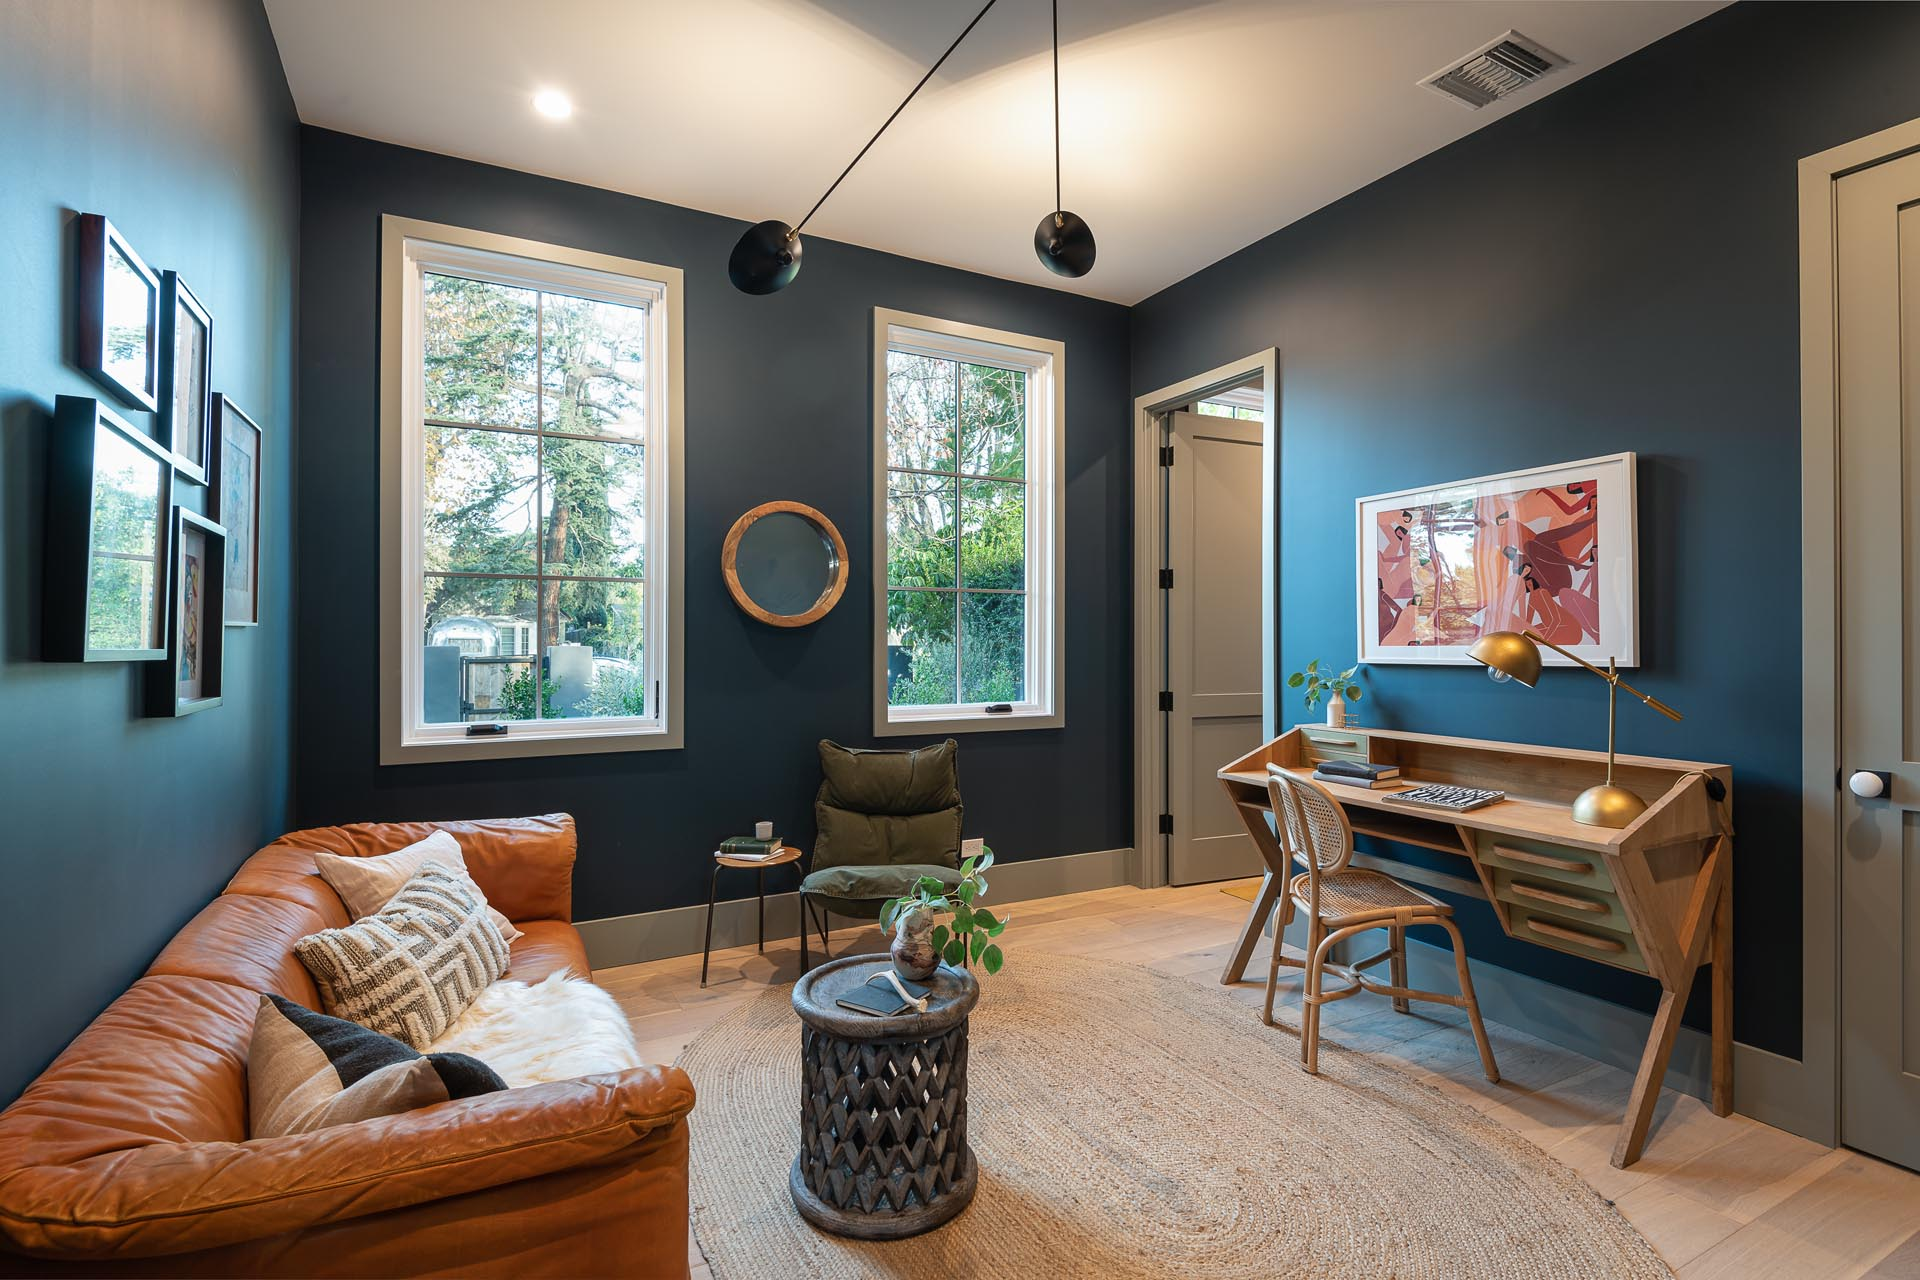 A modern home office with white framed windows, dark walls, a leather sofa, and a wood desk.